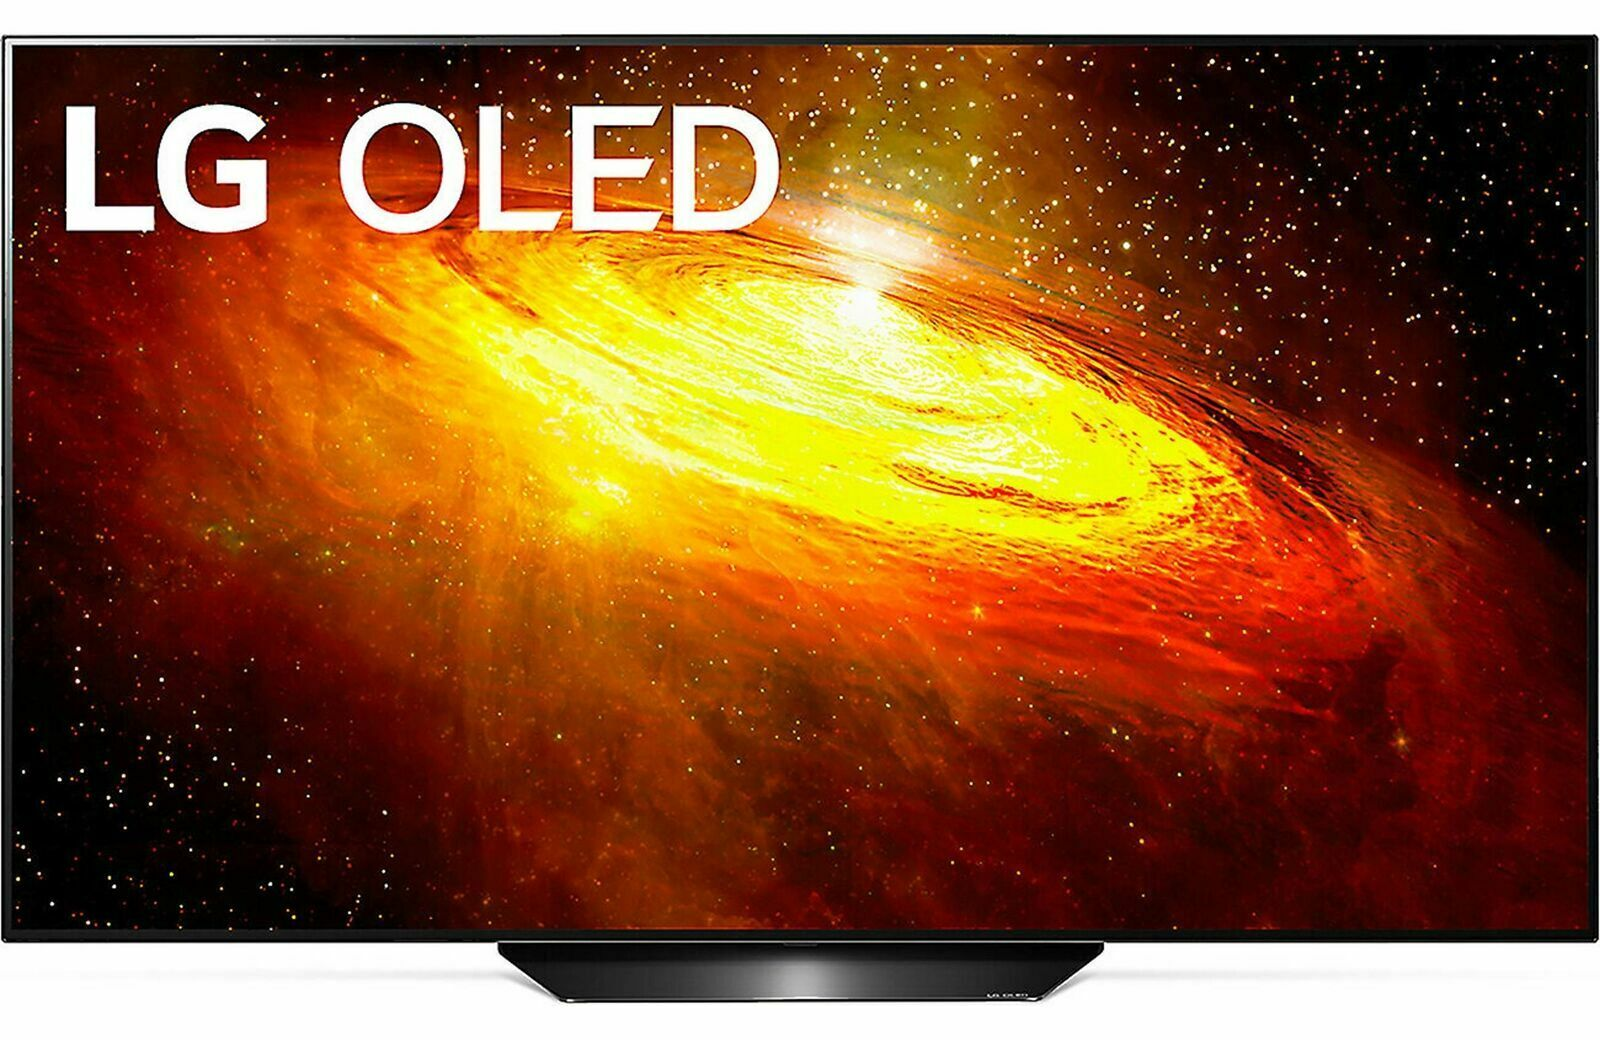 LG OLED55BXP 55 4K Ultra HD HDR Smart OLED TV - 2020 Model. Available Now for 1296.99